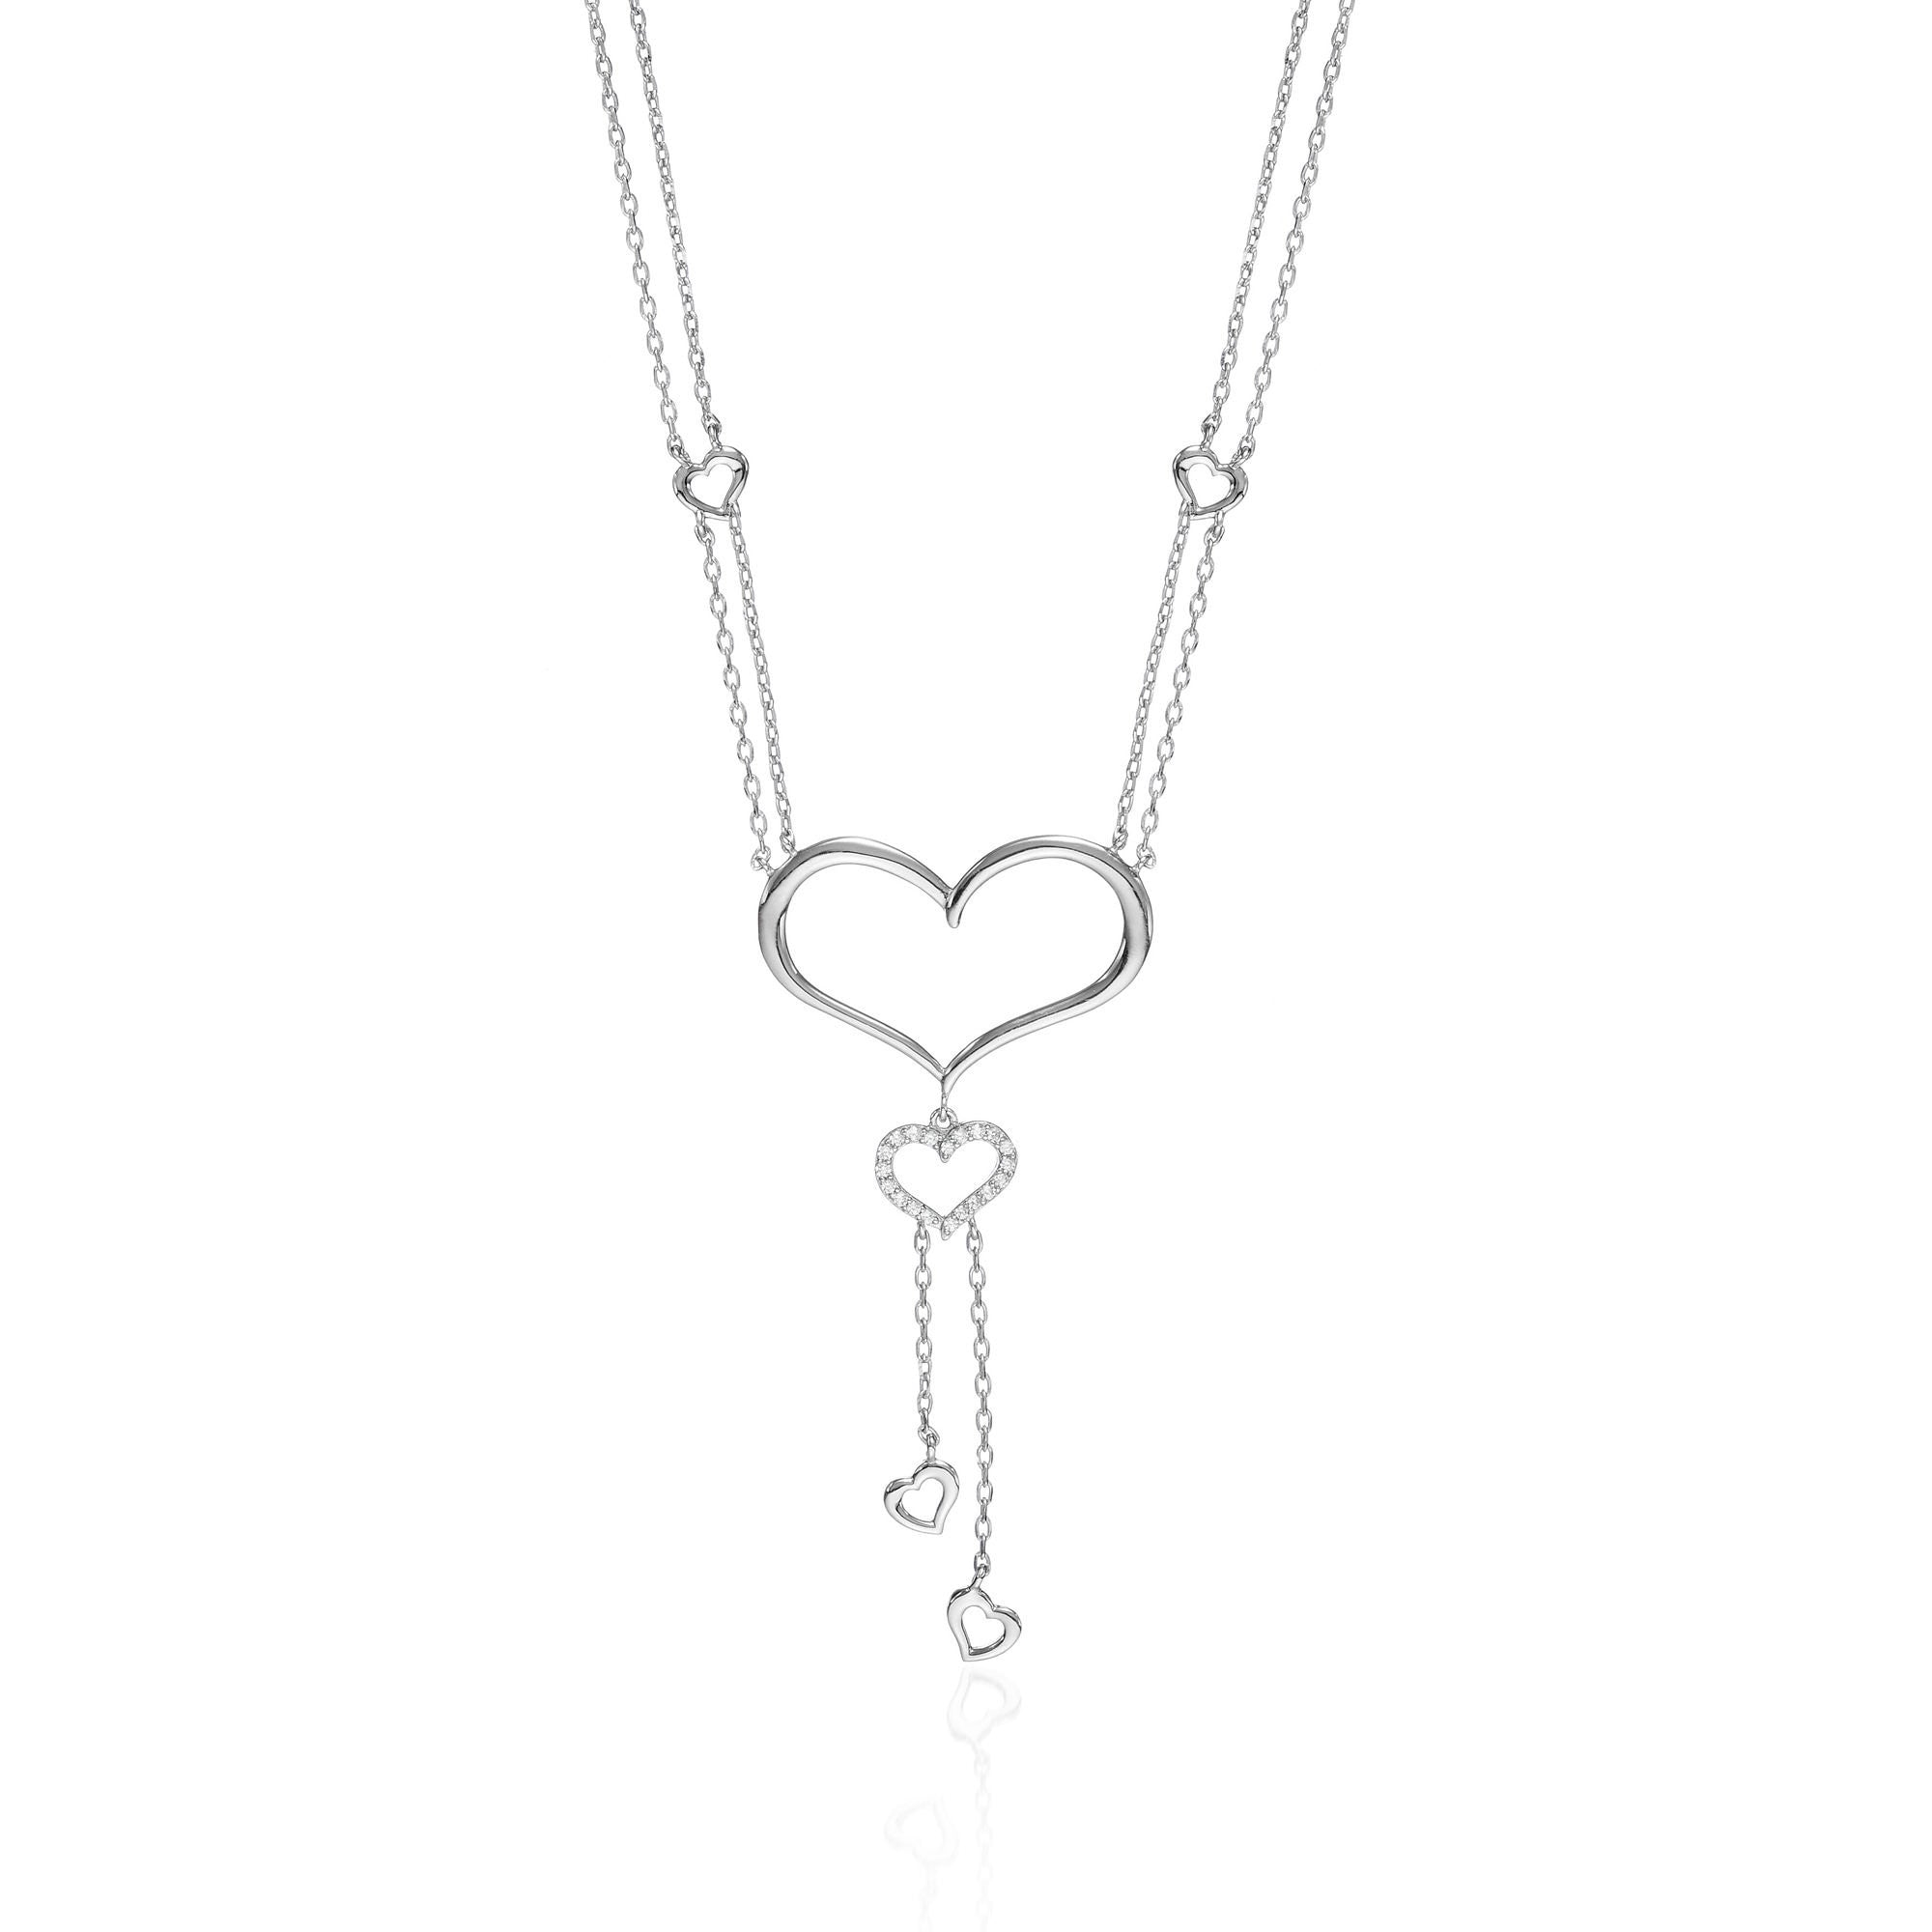 Amoré Silver Necklace